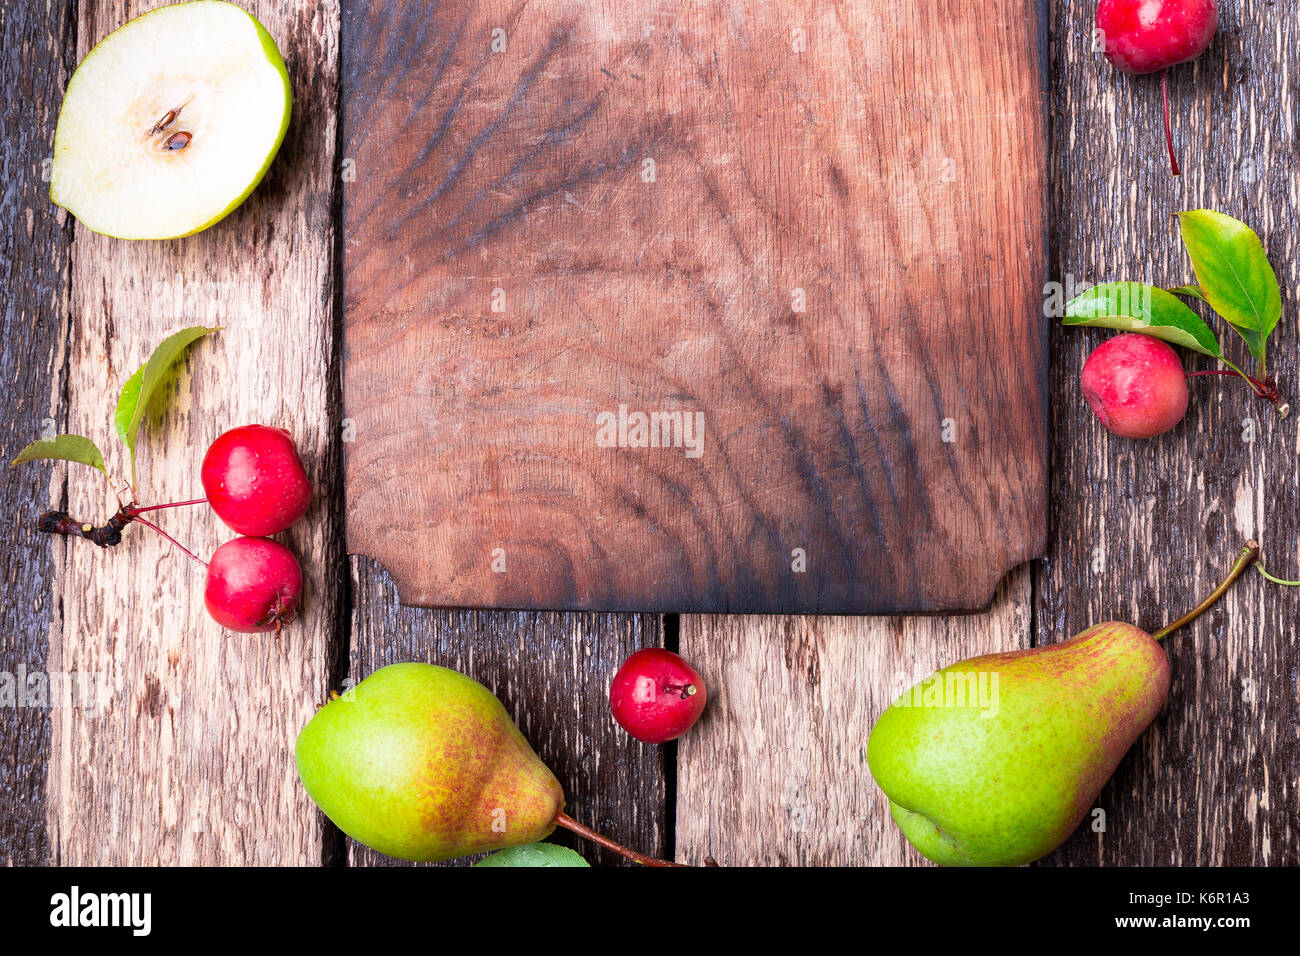 Pear and small apple around empty cutting board on wooden rustic background. Top view. Frame. Autumn harvest. Copy - Stock Image